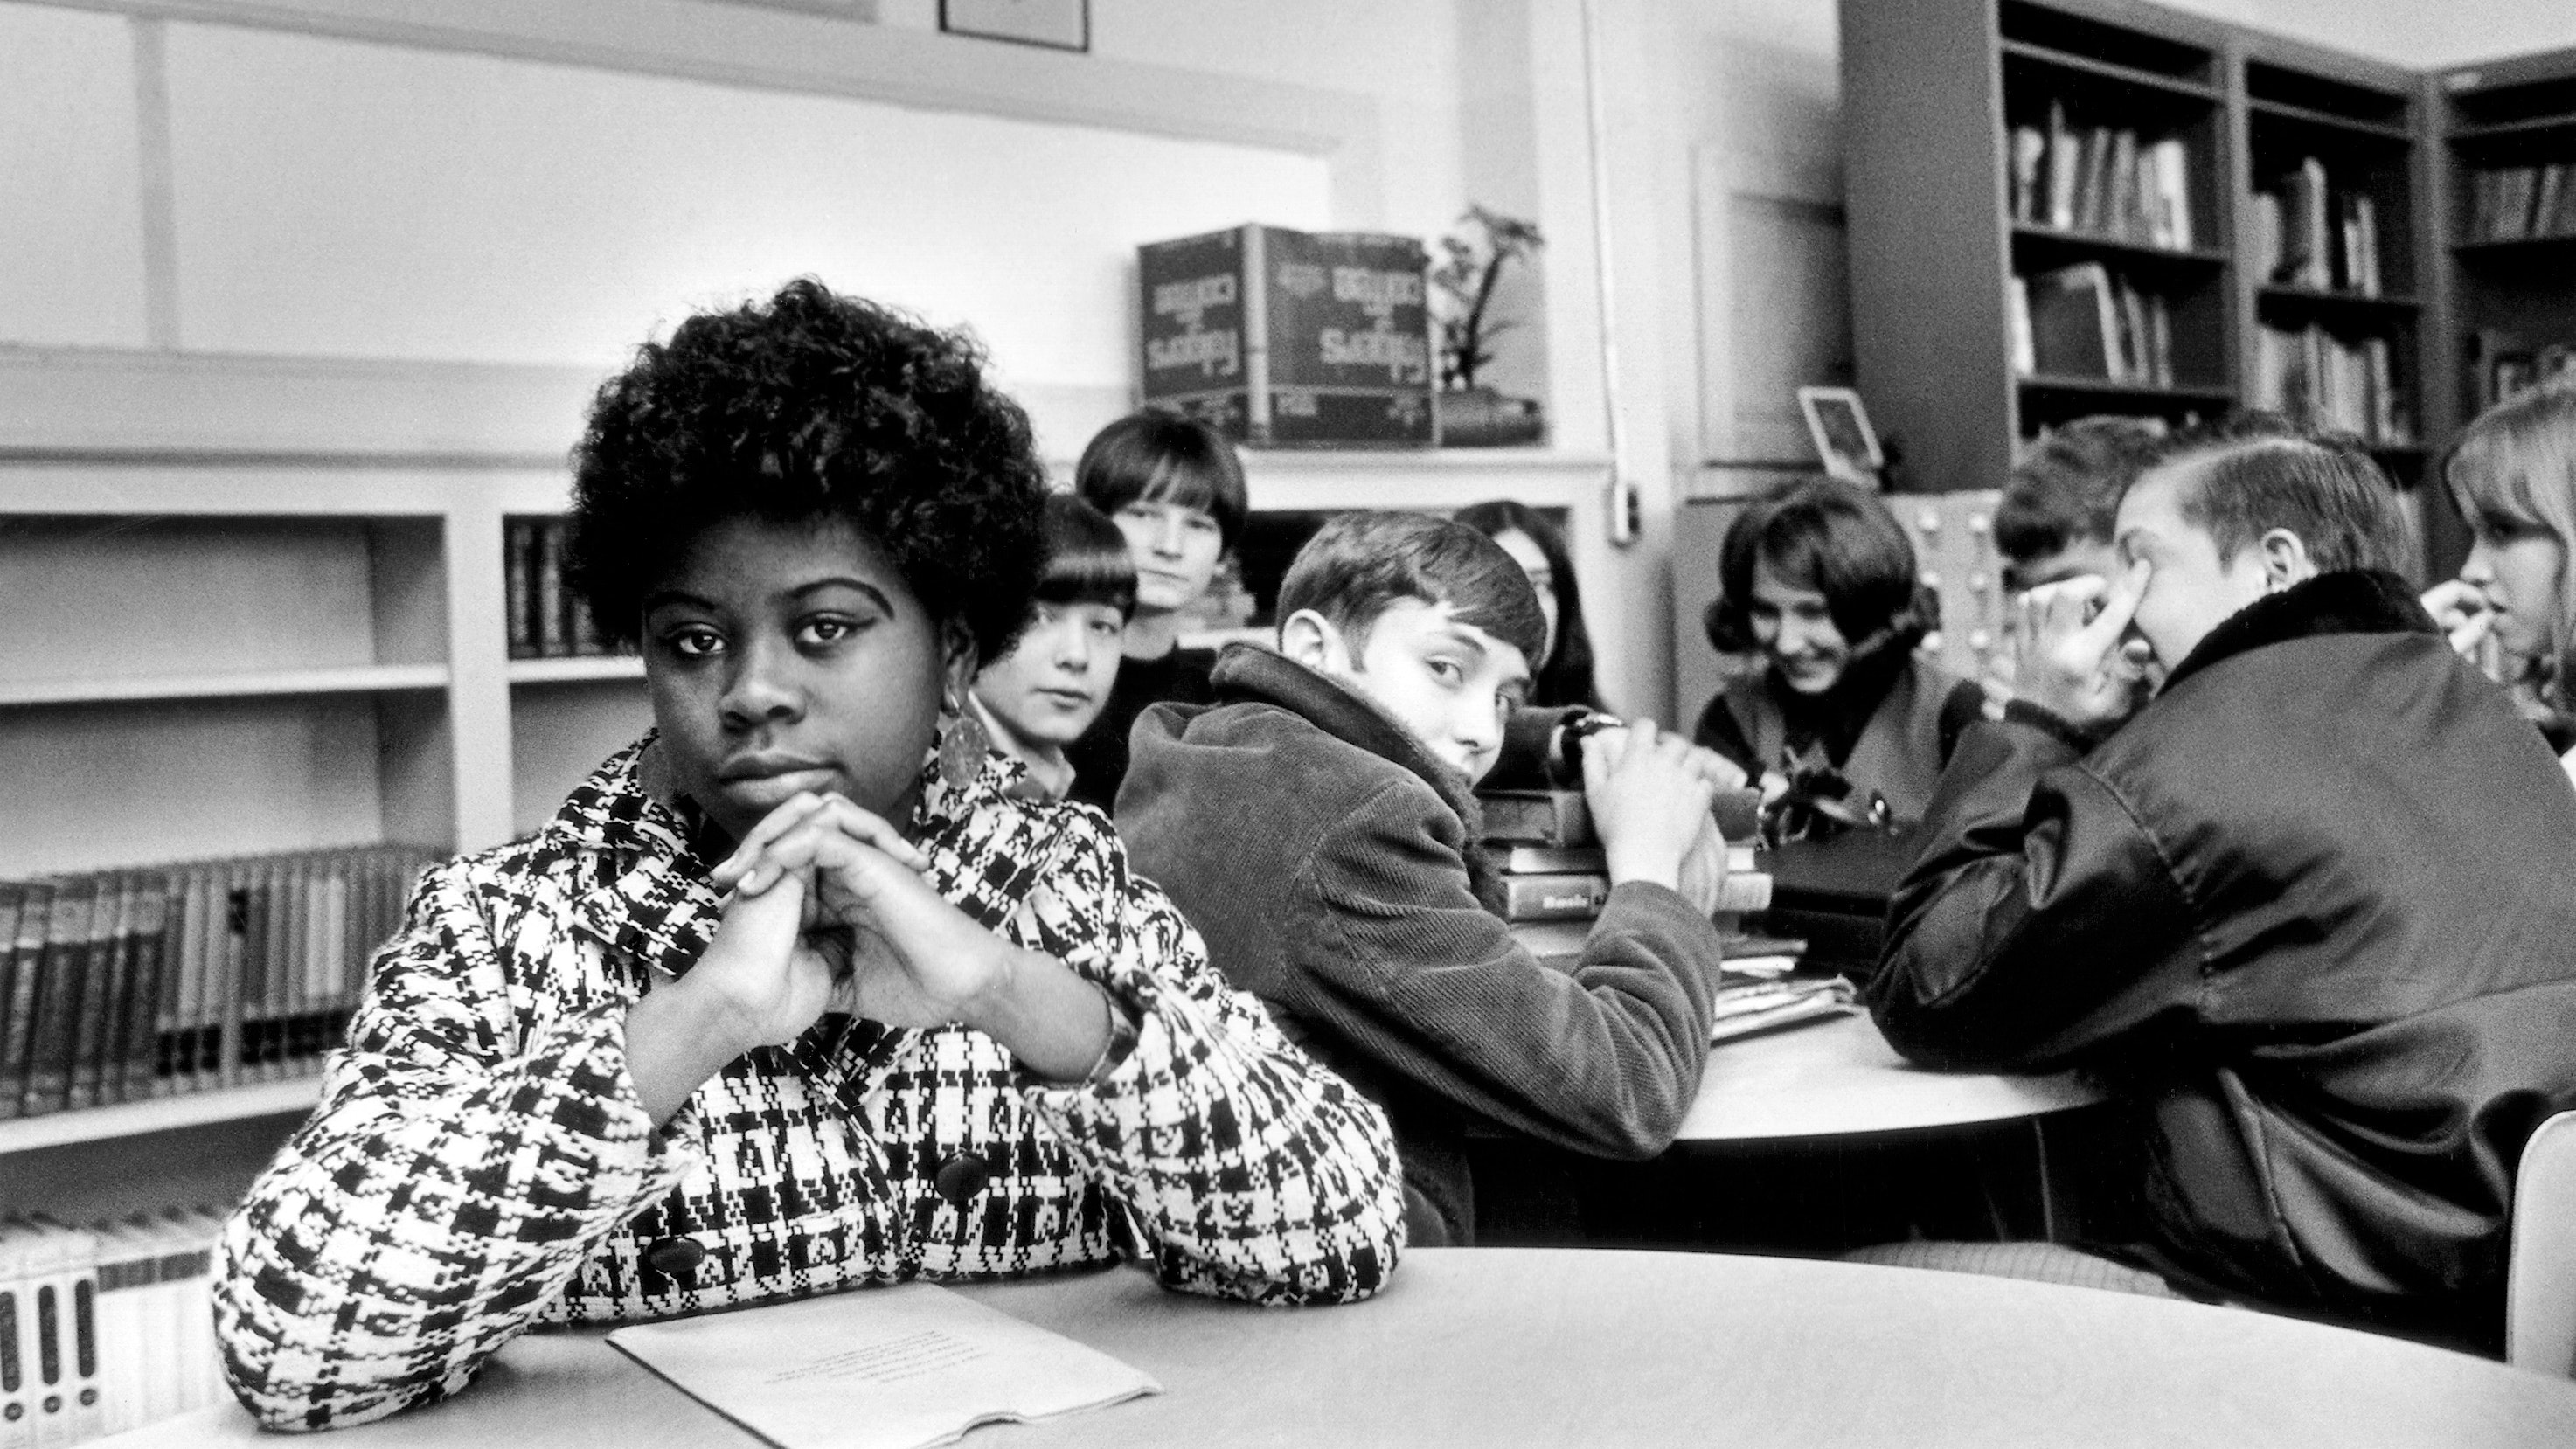 Linda Brown, girl at centre of school desegregation case, dies at 76